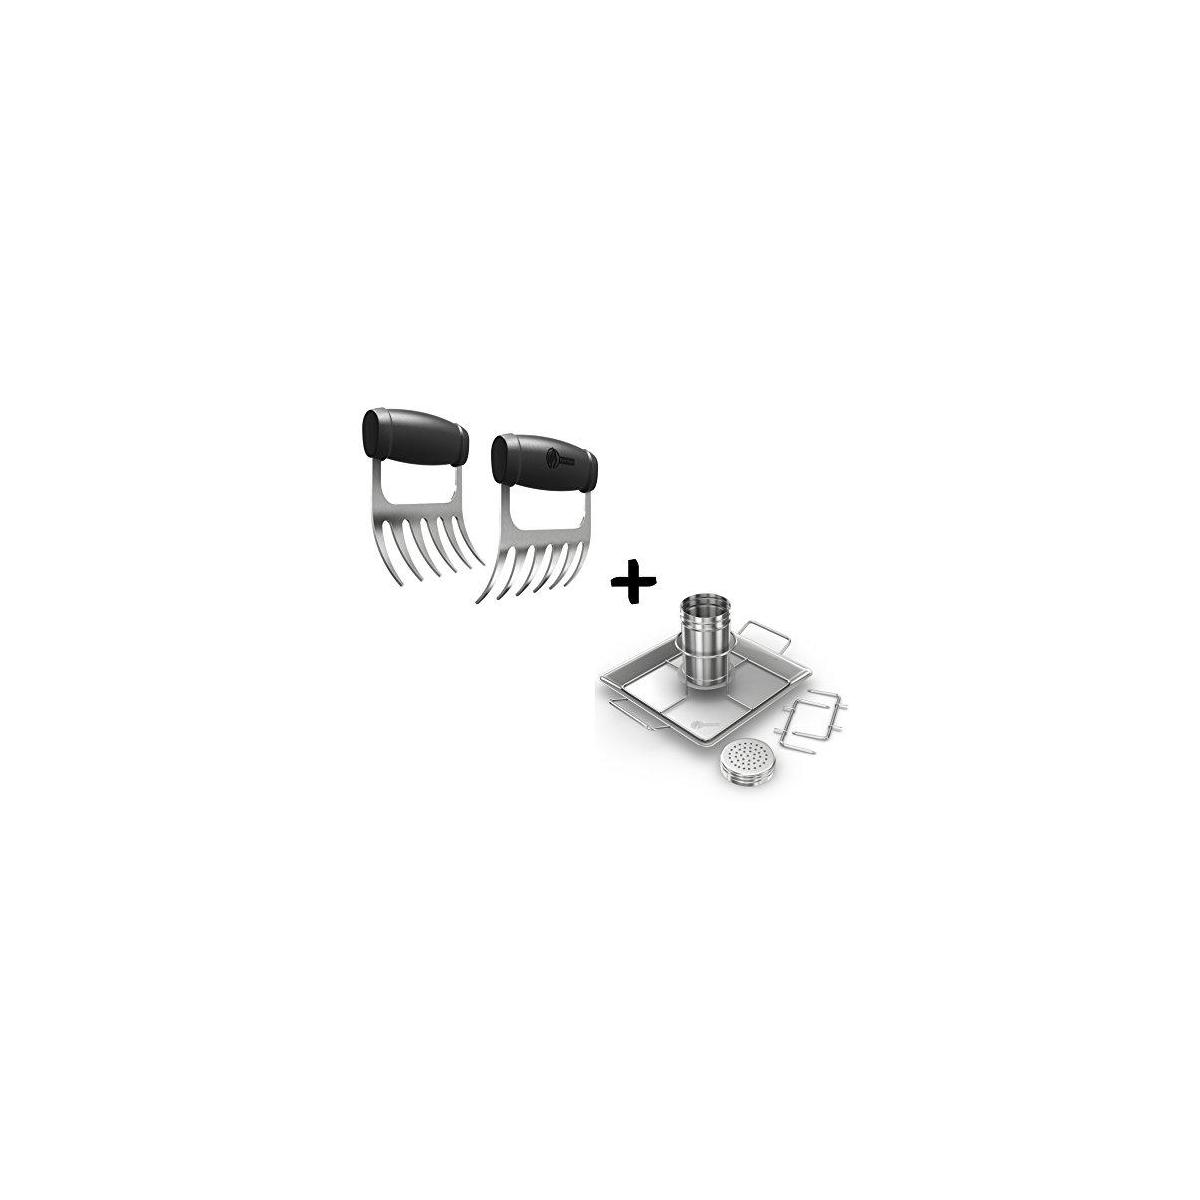 Cave Tools Meat Claws - Stainless Steel Pulled Pork SHREDDERS + Beer Can Chicken Roaster Rack - Includes 4 Vegetable Spikes - Vertical BBQ Roasting Holder for Grill Smoker or Oven - Dishwasher Safe